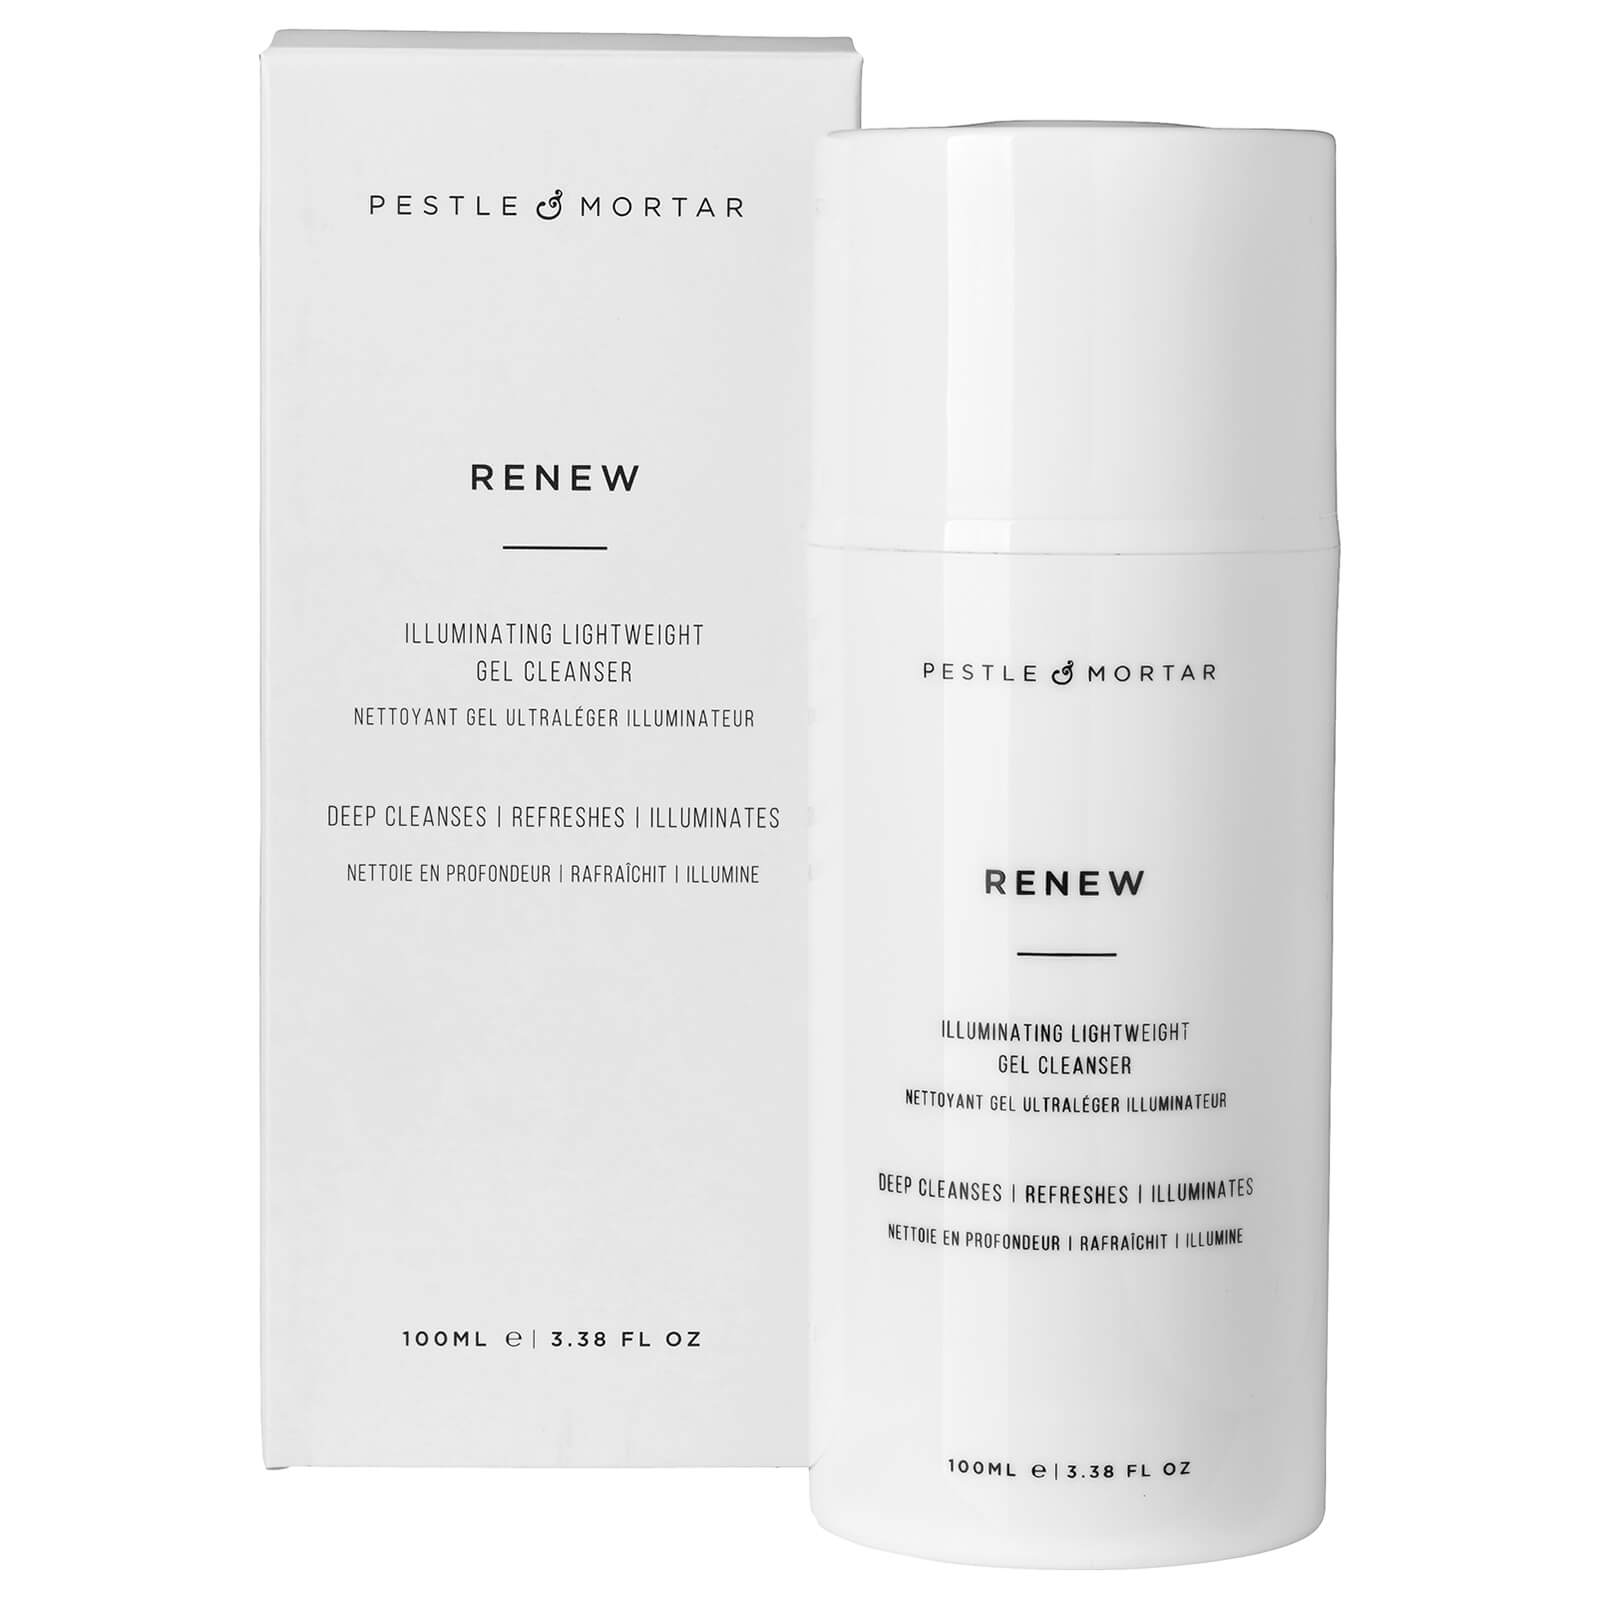 Pestle & Mortar Renew Gel Cleanser 100ml